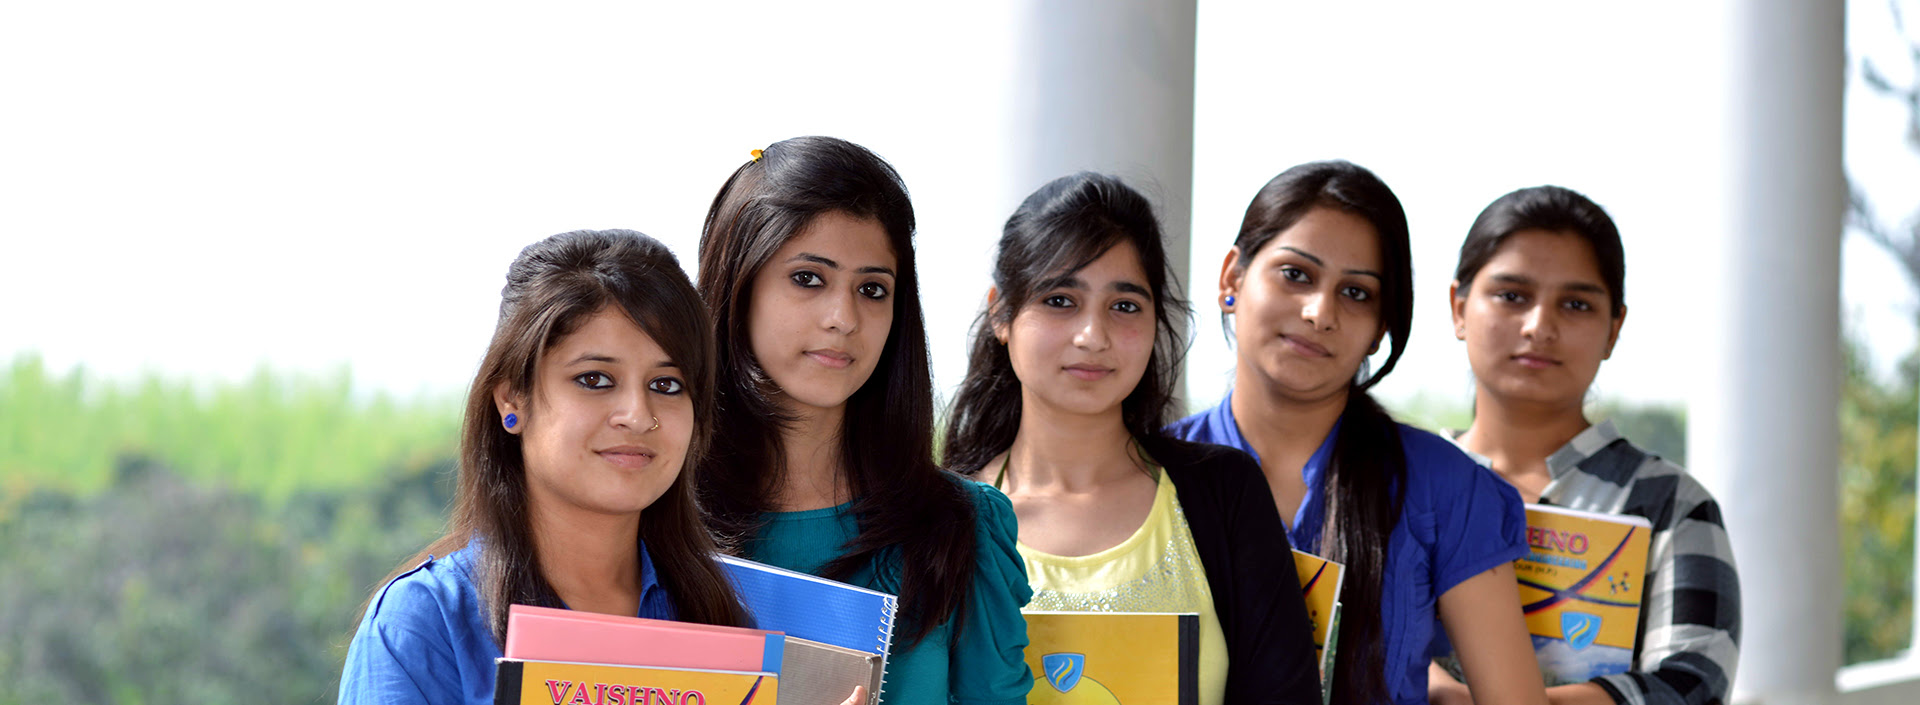 online college education